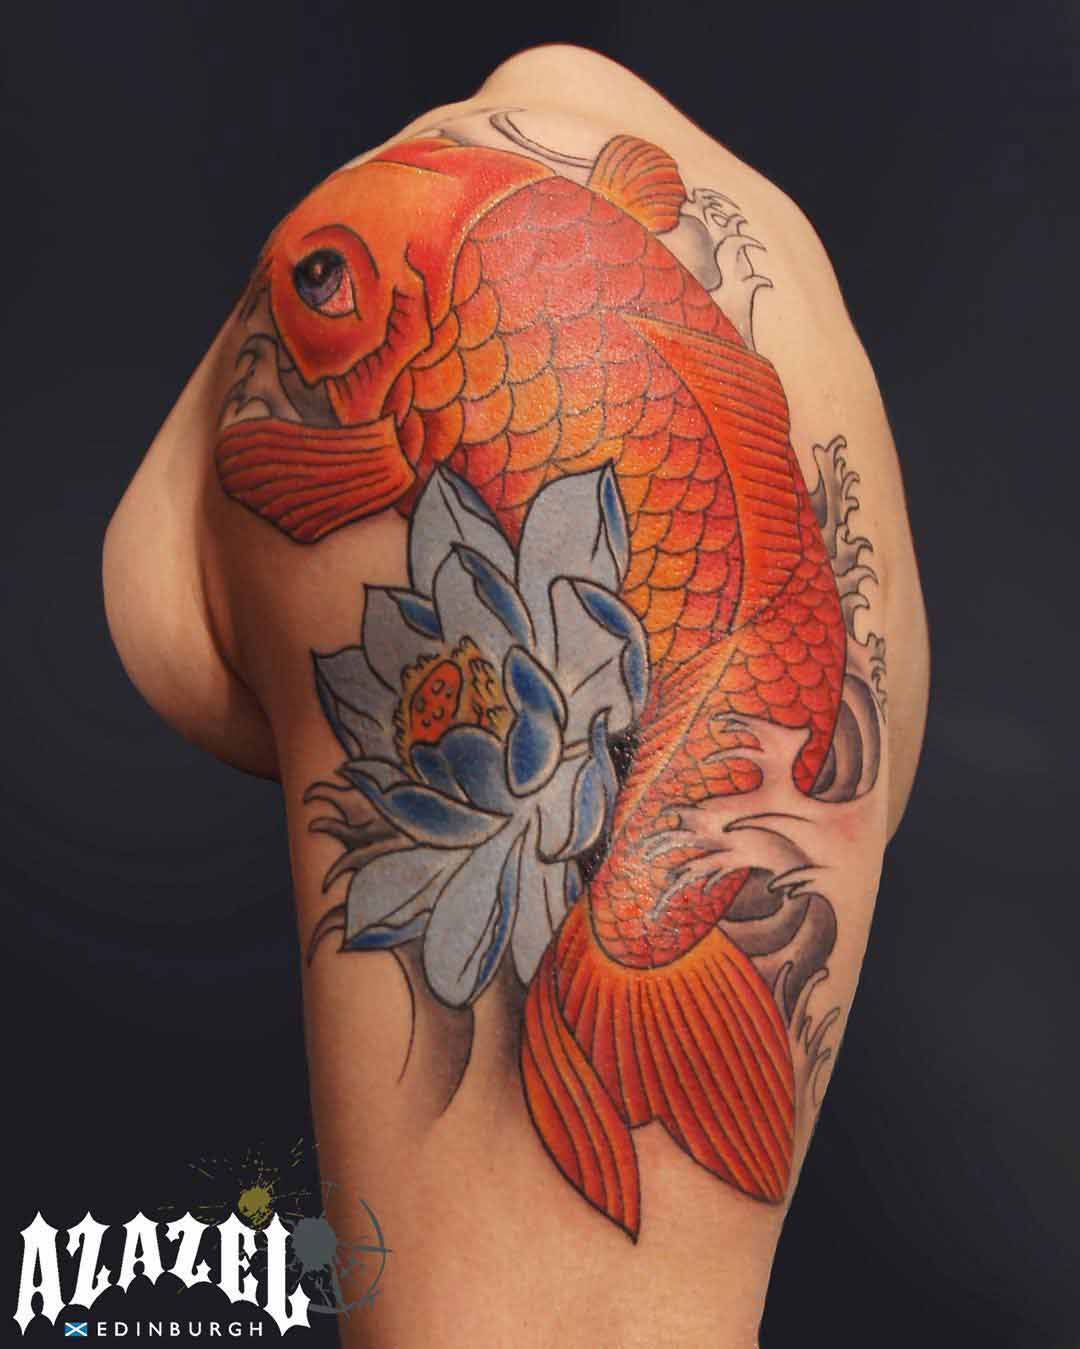 45 Traditional Japanese Koi Fish Tattoo Meaning Designs: Best Tattoo Ideas Gallery - Part 2